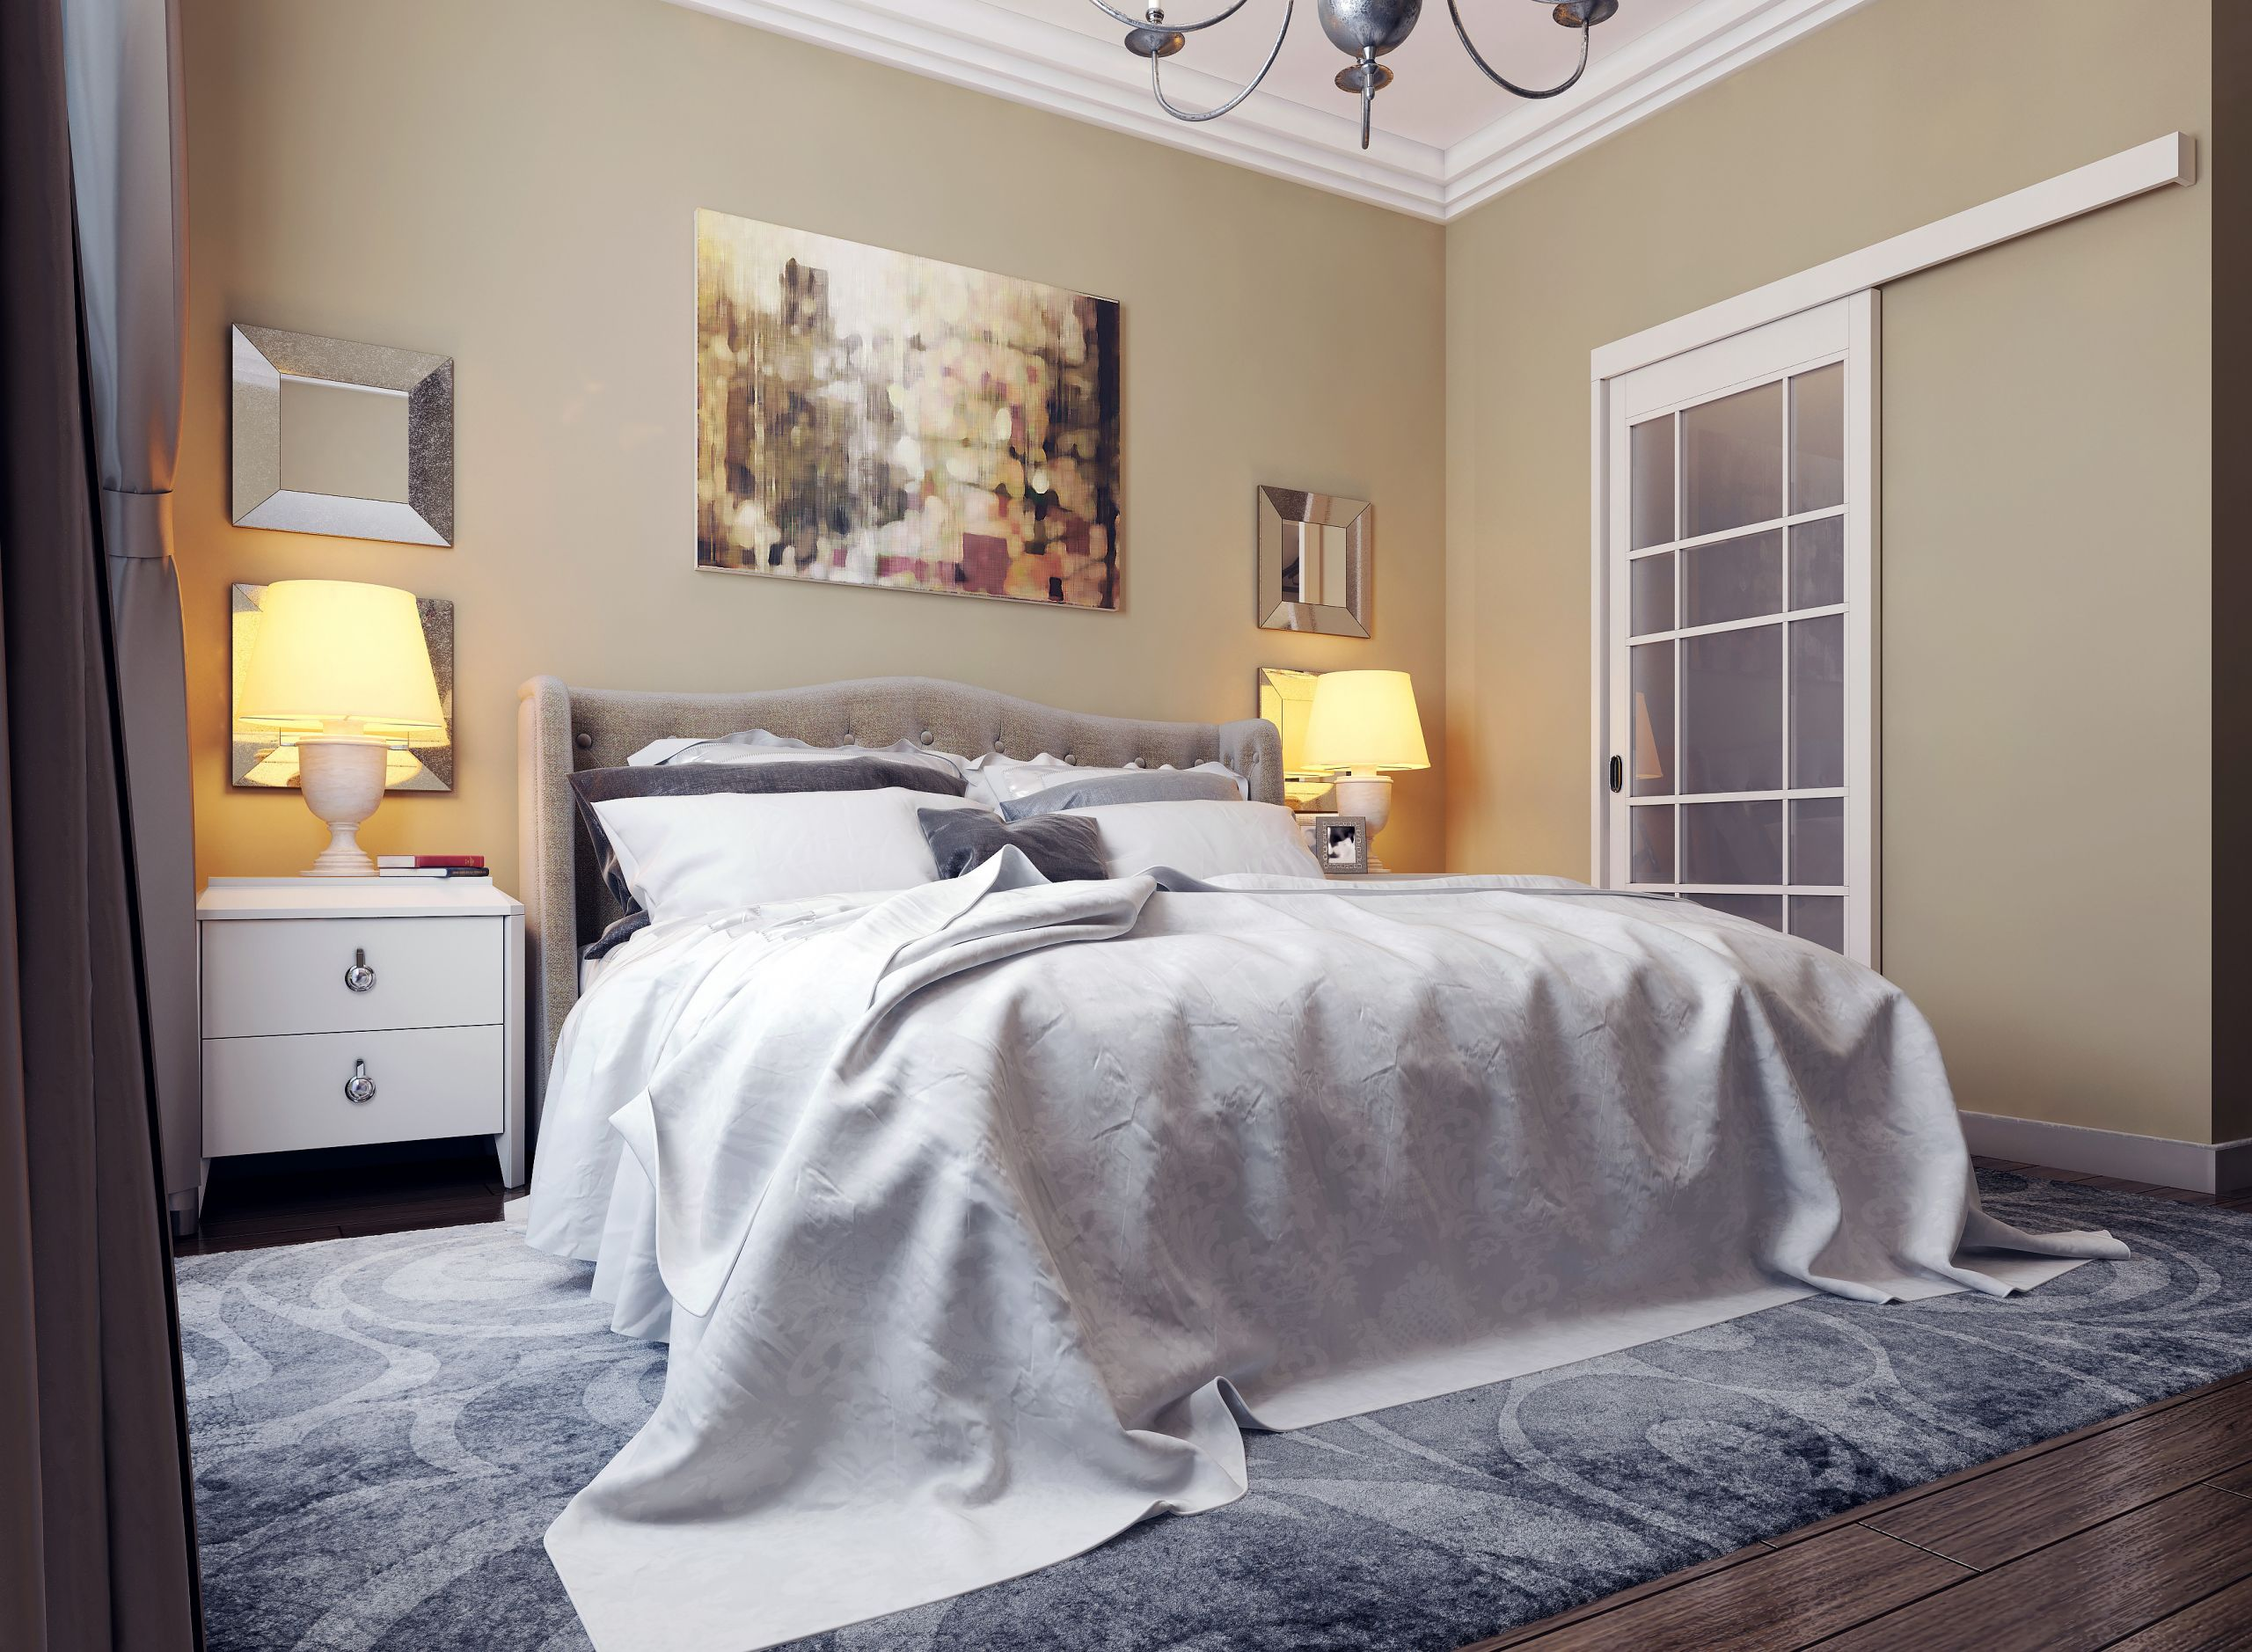 Wall Pictures For Bedroom  Amazing Bedroom Wall Decor Ideas